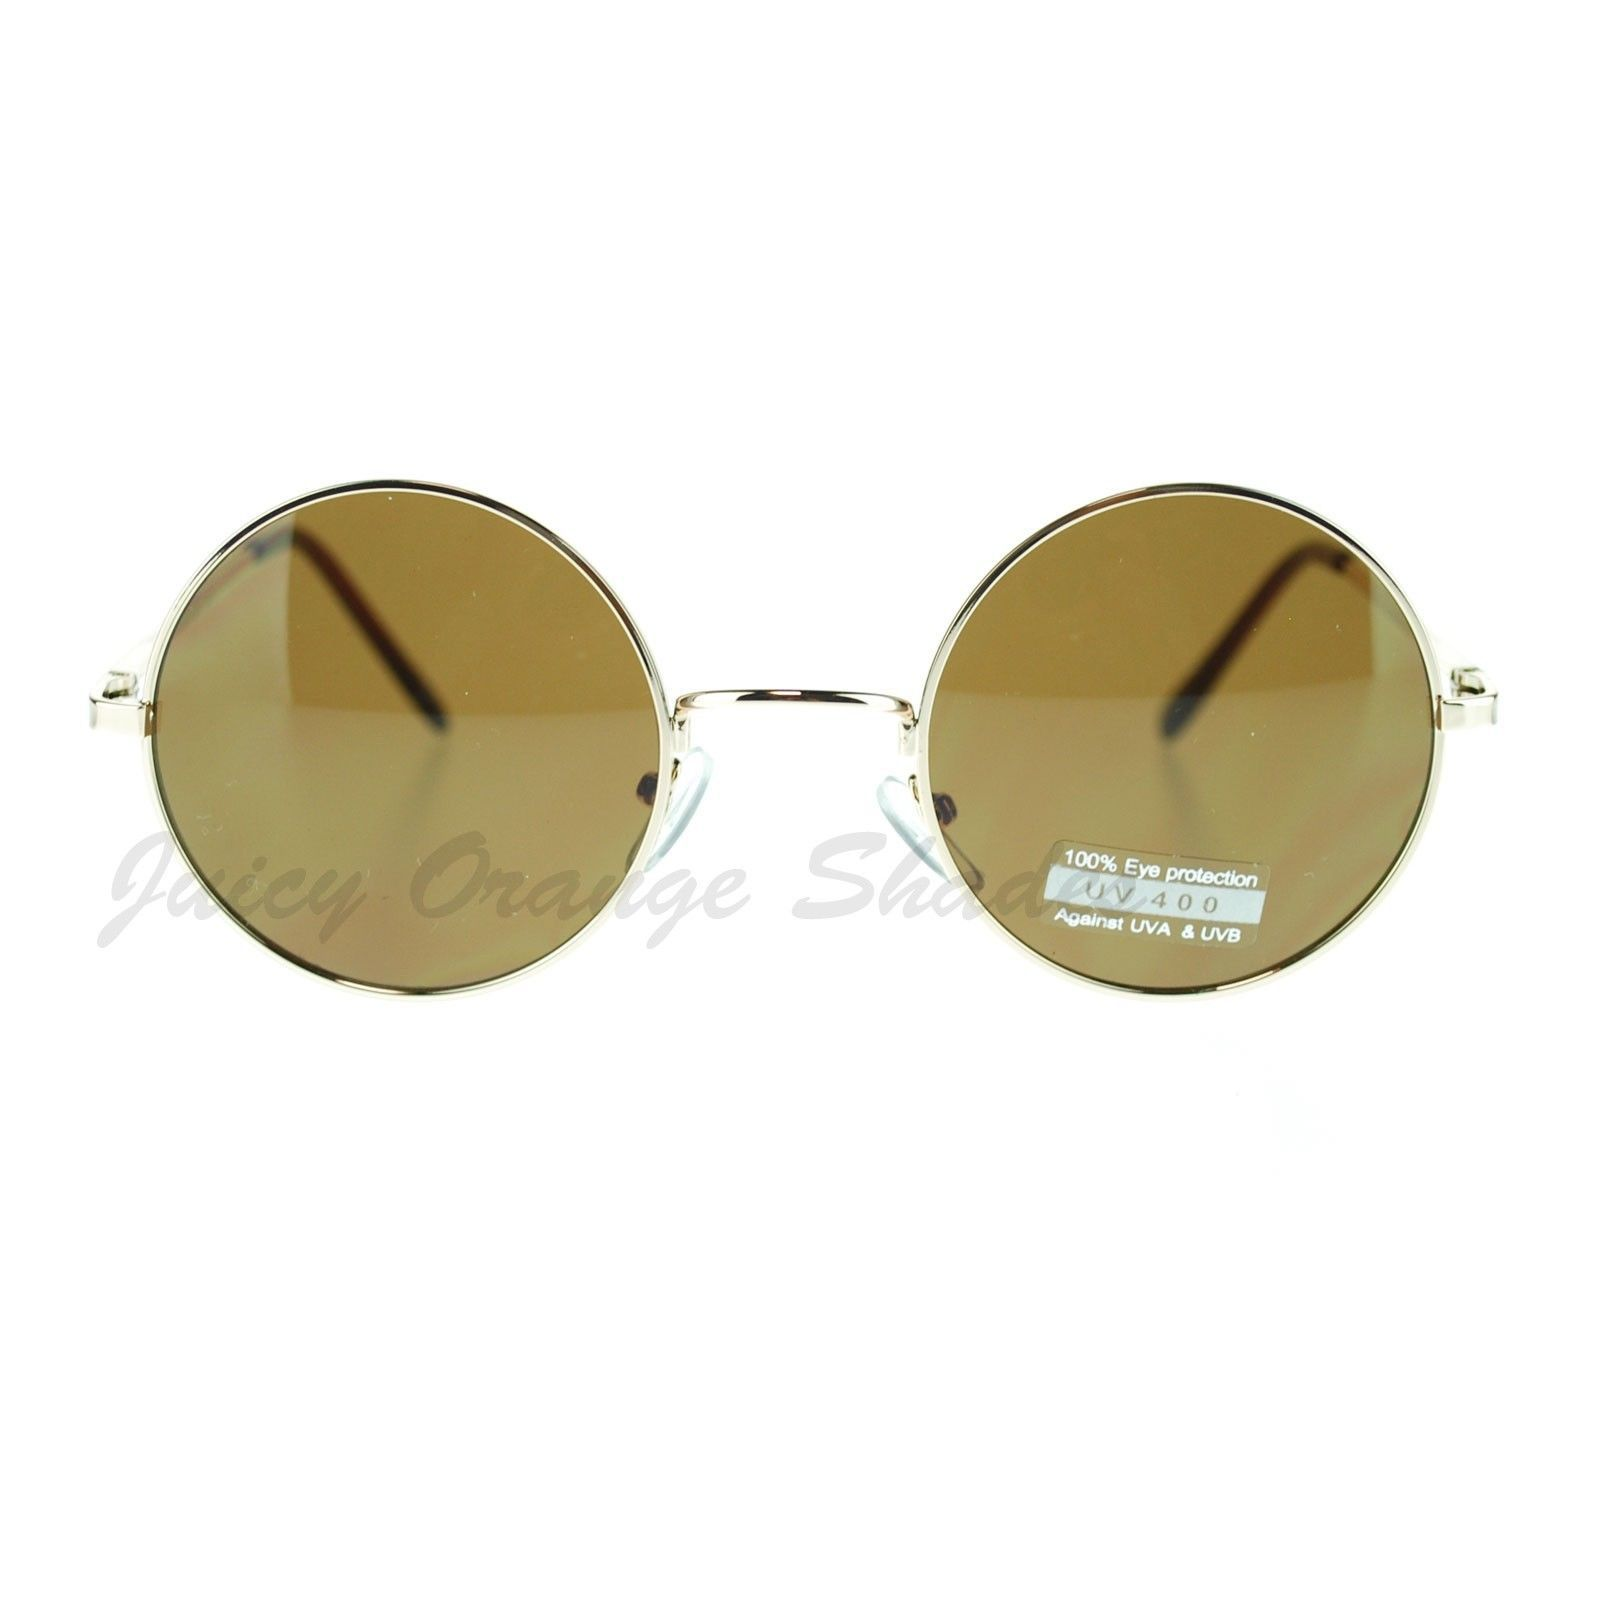 Thin Lite Metal Frame Round Circle Sunglasses Spring Hinge